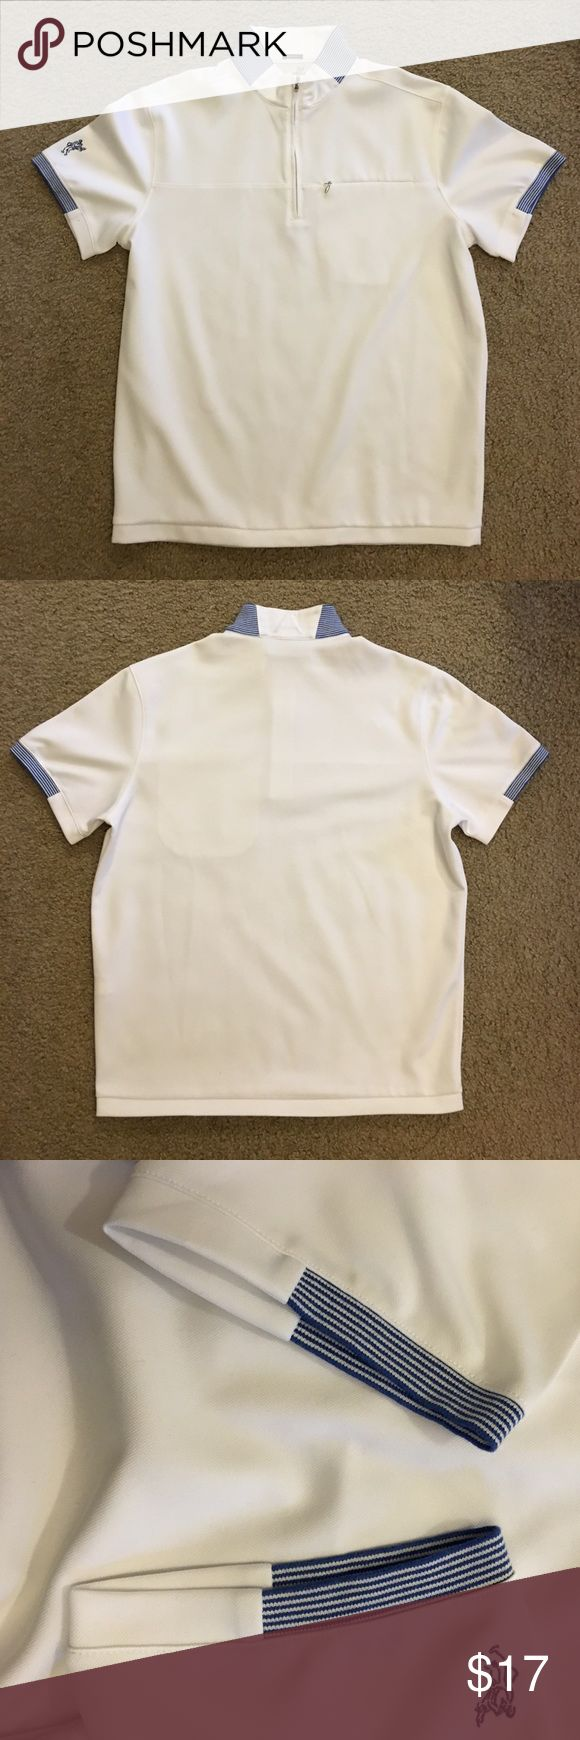 Ashworth Golf Poloshirt Lightly worn, no stain. In great condition. Shirts Polos